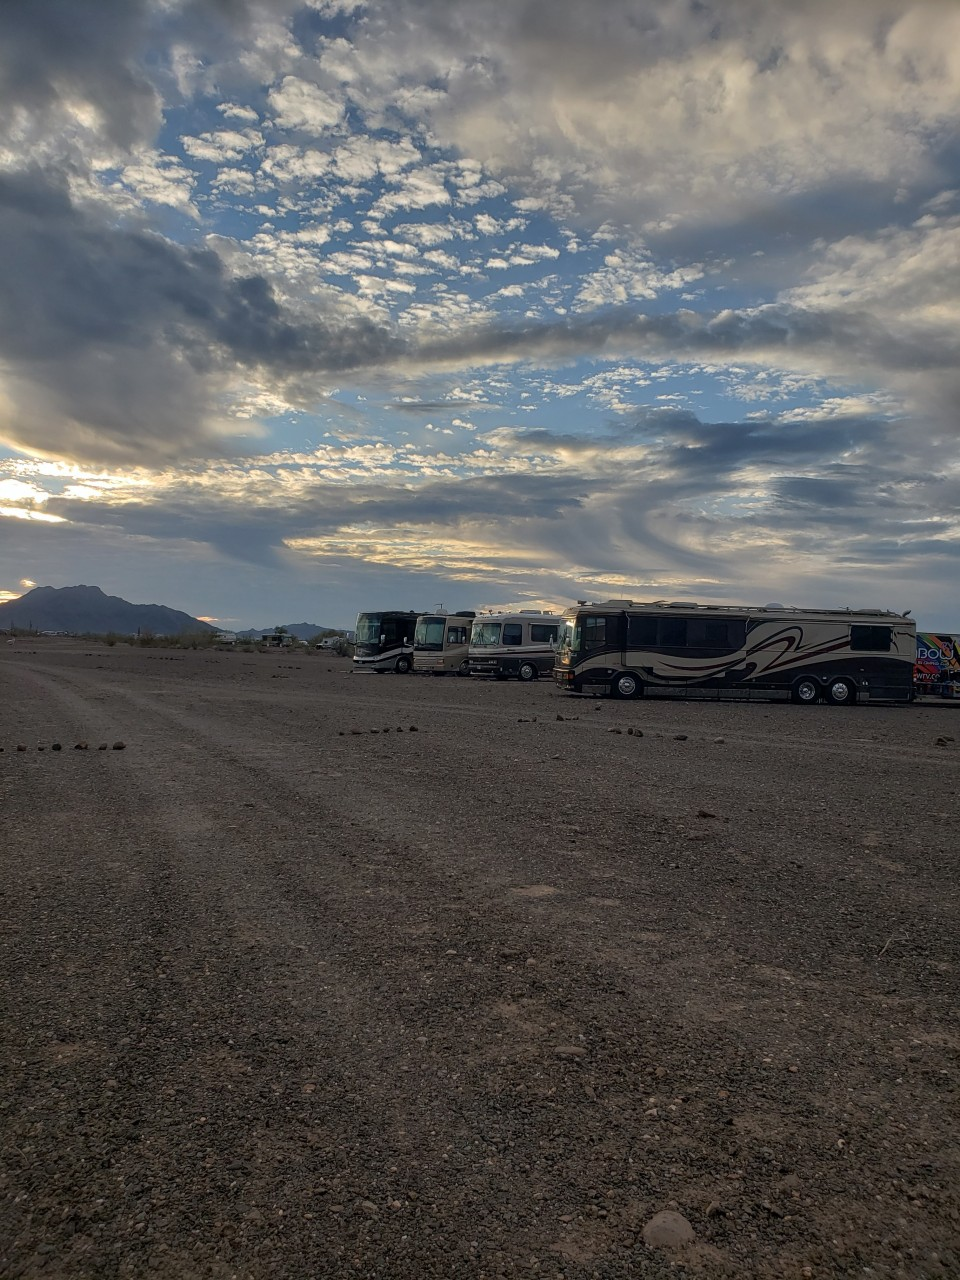 Quartzsite Arizona Rally FYI: There were no issues with entering the La Posa South Kiosk BLM in regards to the Government shutdown.  We are were able to set up camp, we have already 4 rigs starting the circle of rigs here at camp Rainbow RV.